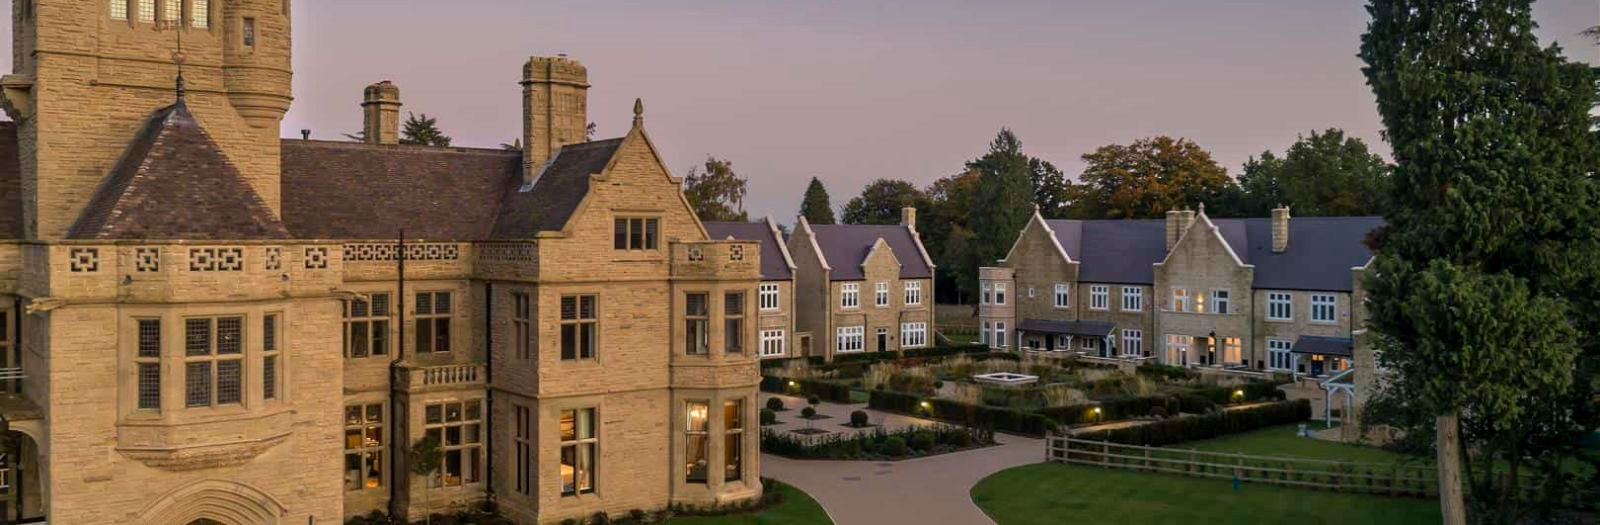 Haseley-Manor-Warwick-dusk-residential-development